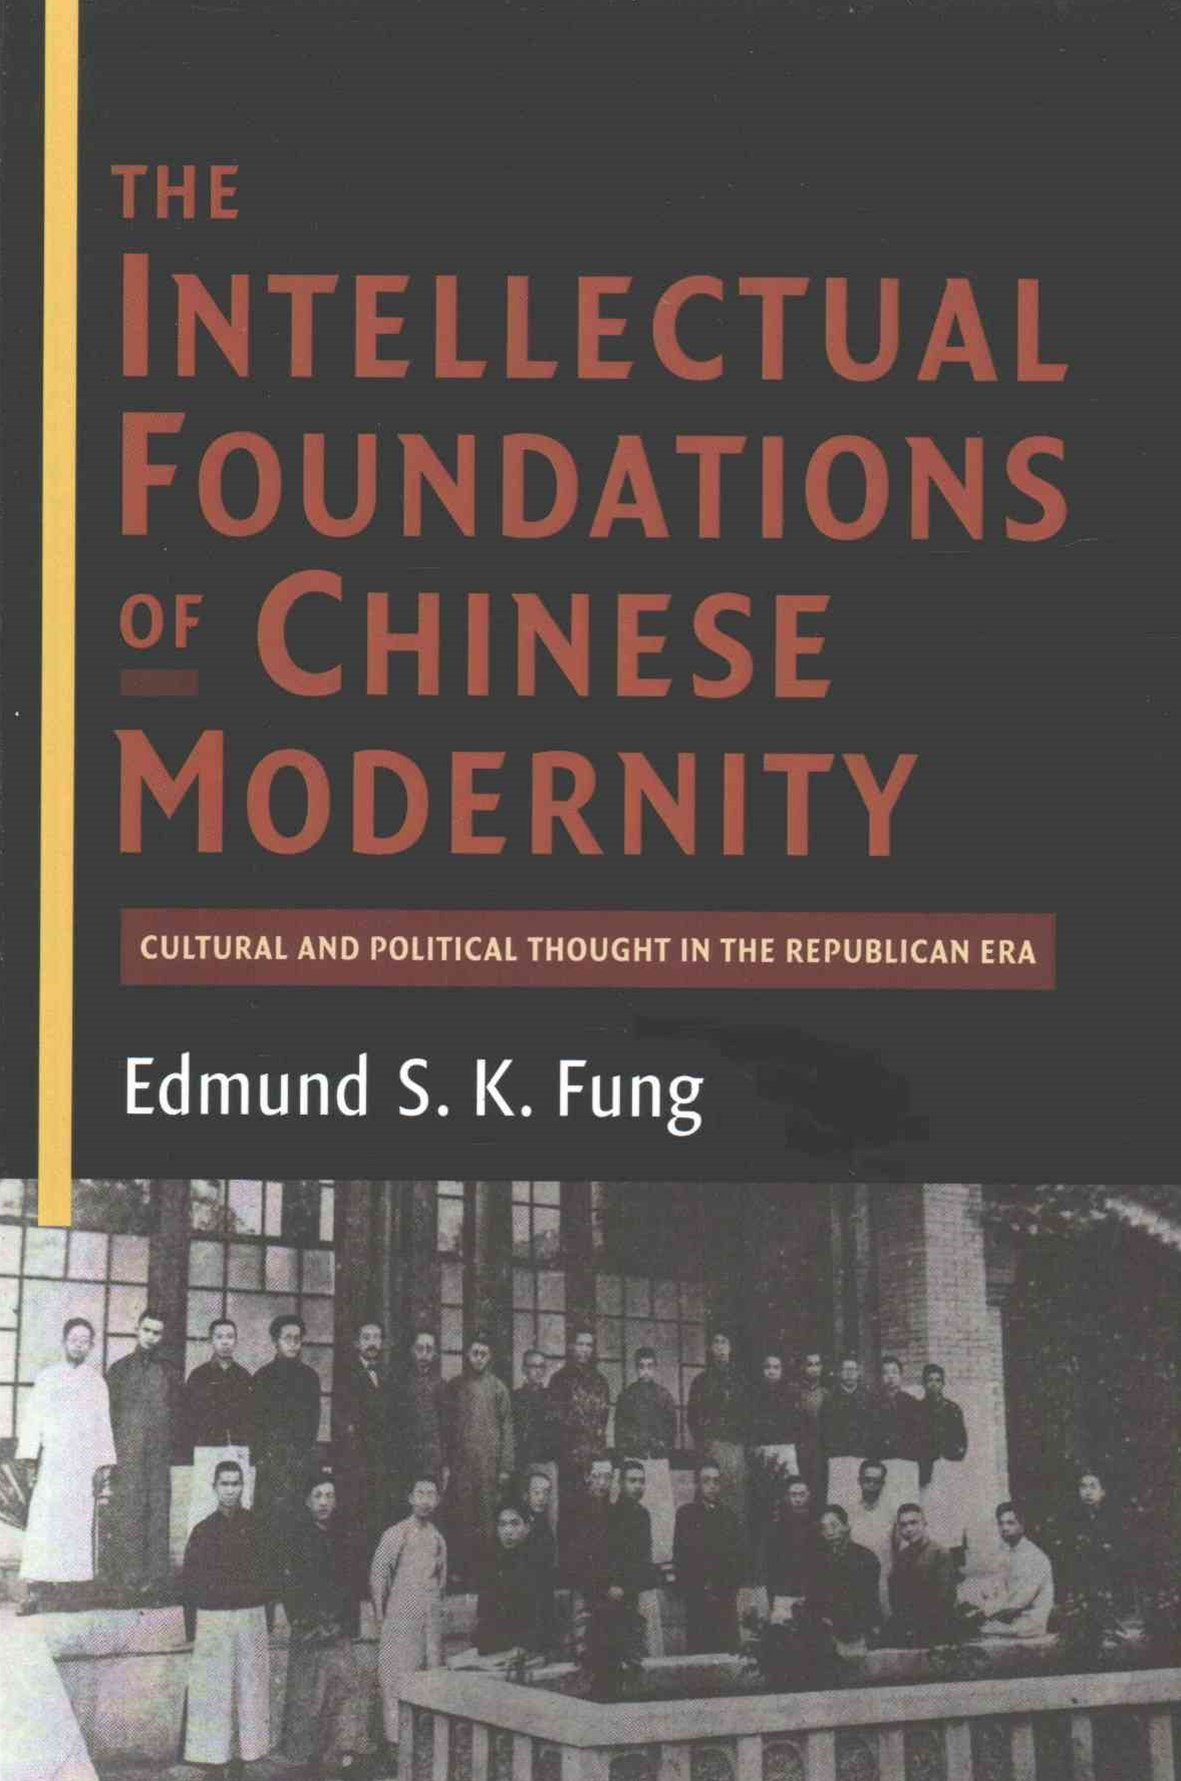 The Intellectual Foundations of Chinese Modernity